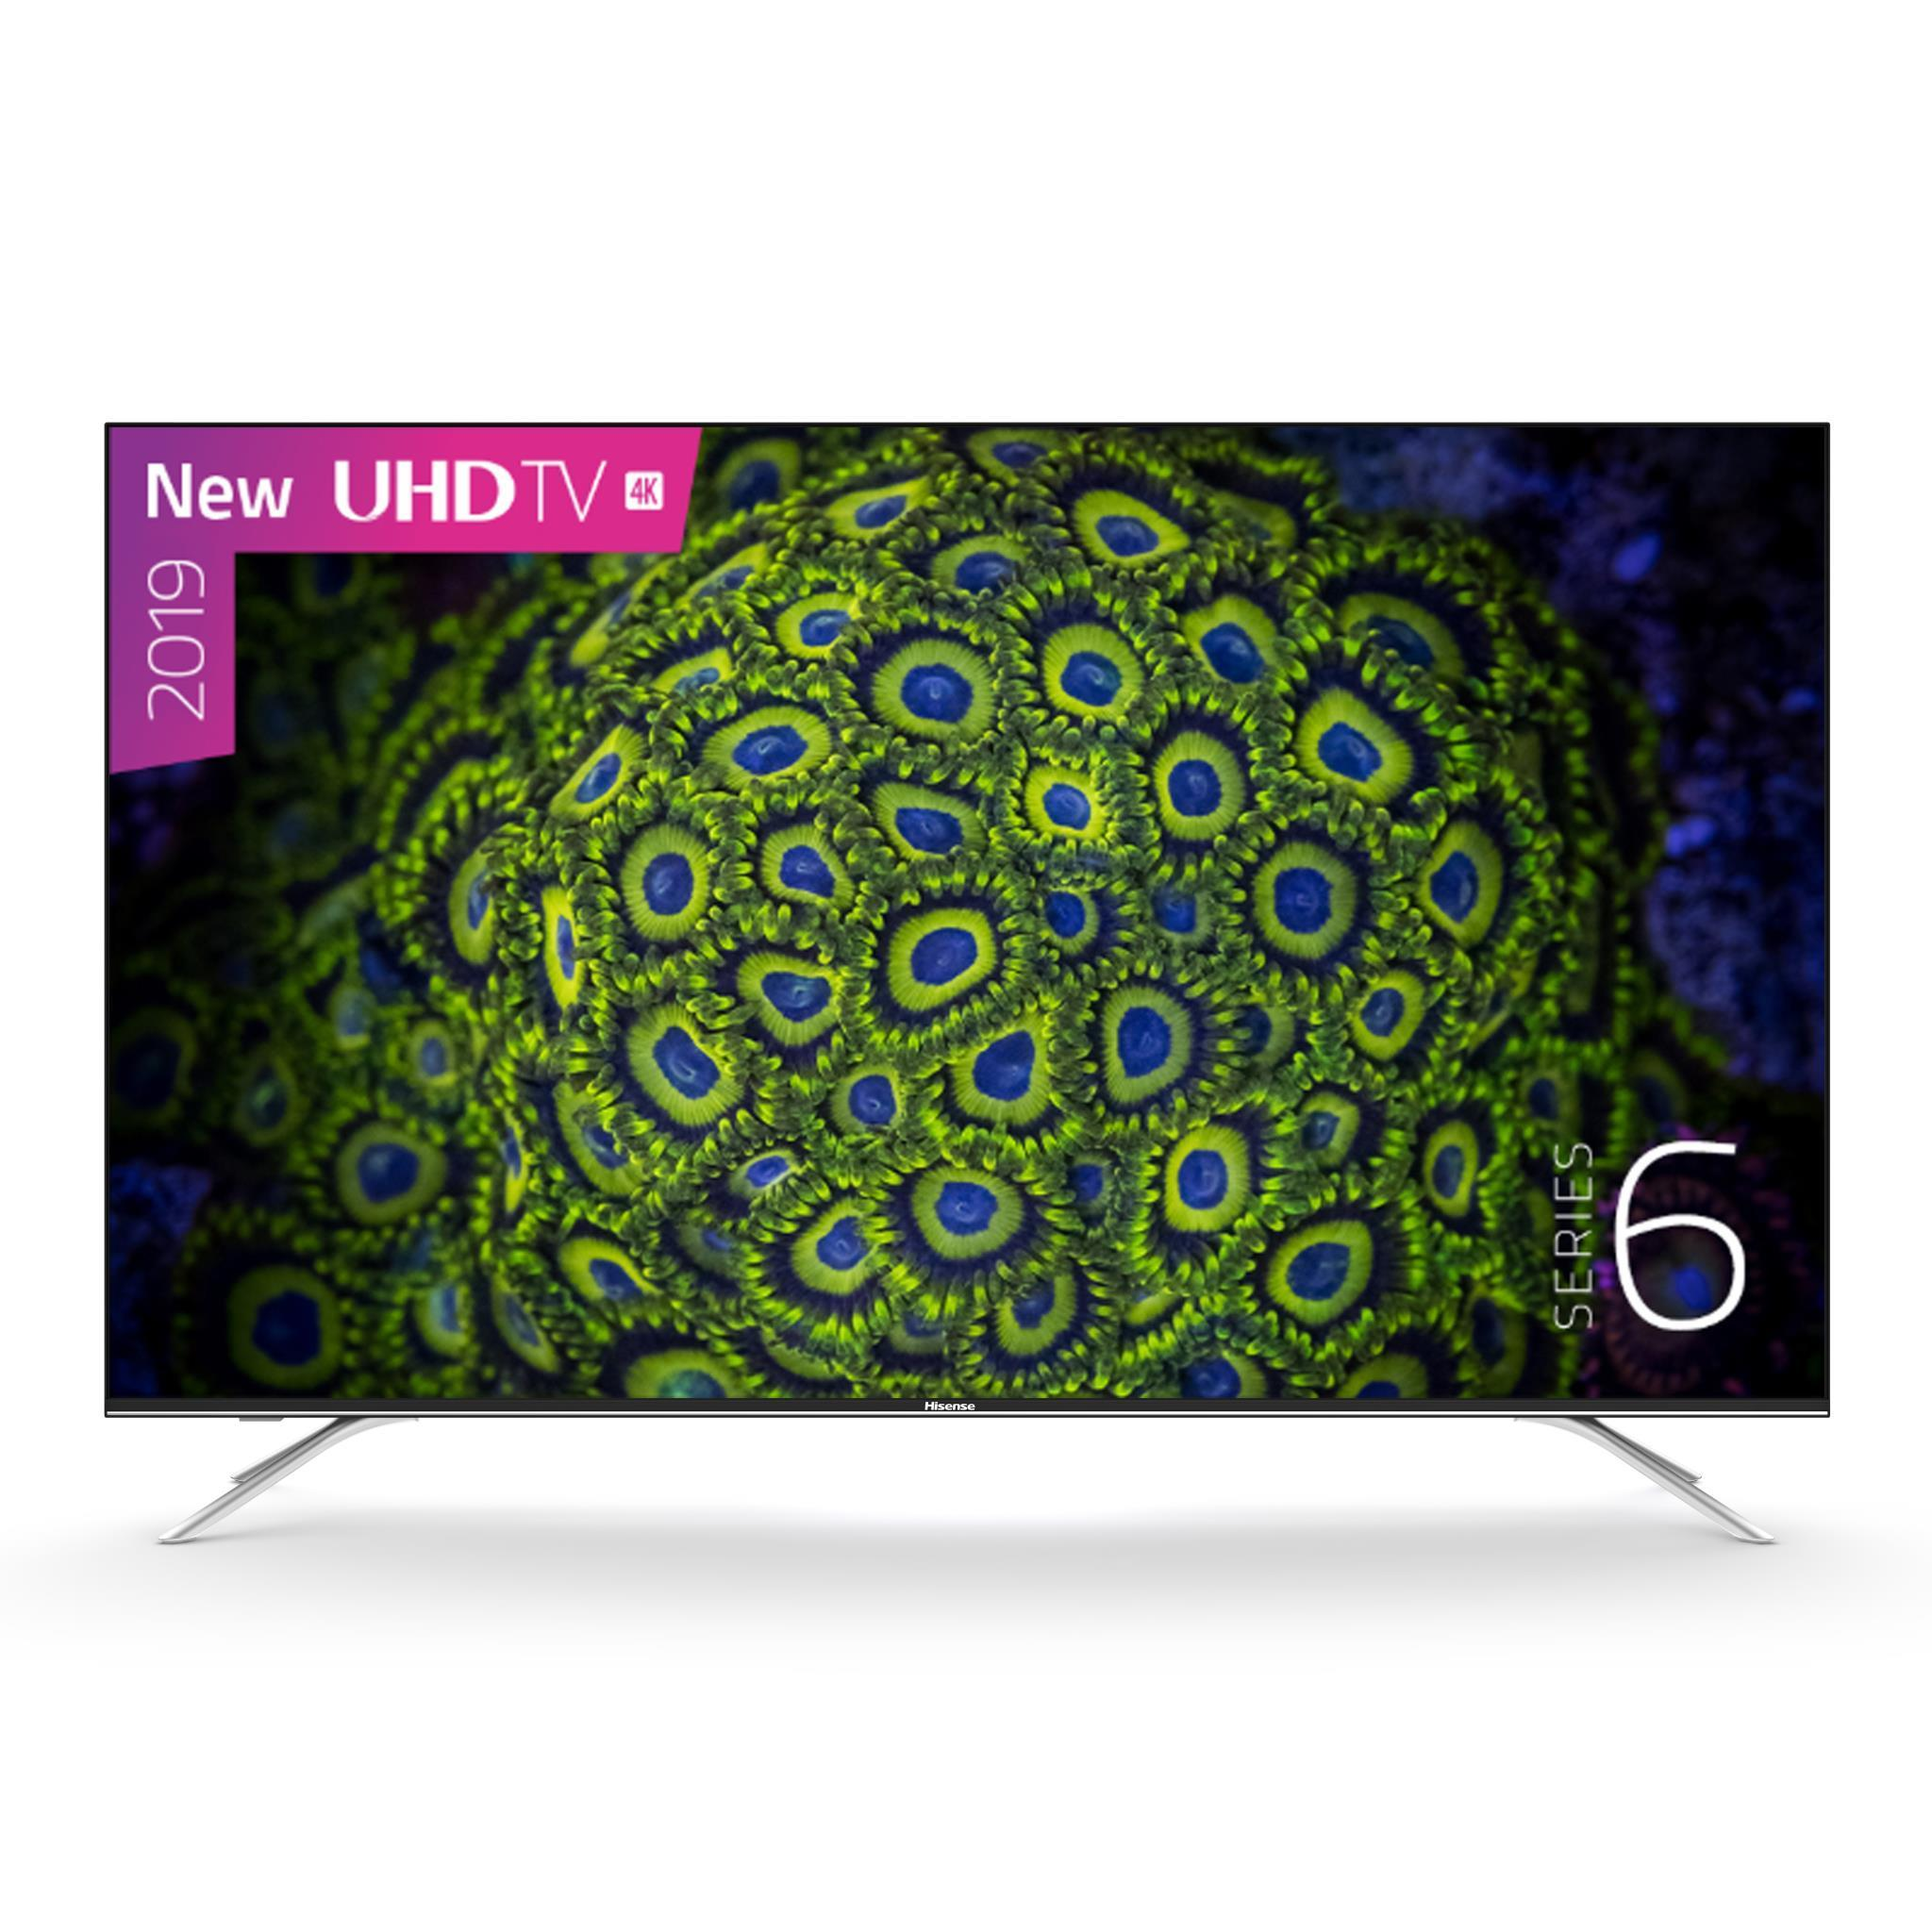 Hisense 55R6 Series 6 55″ 4K UHD Smart LED TV